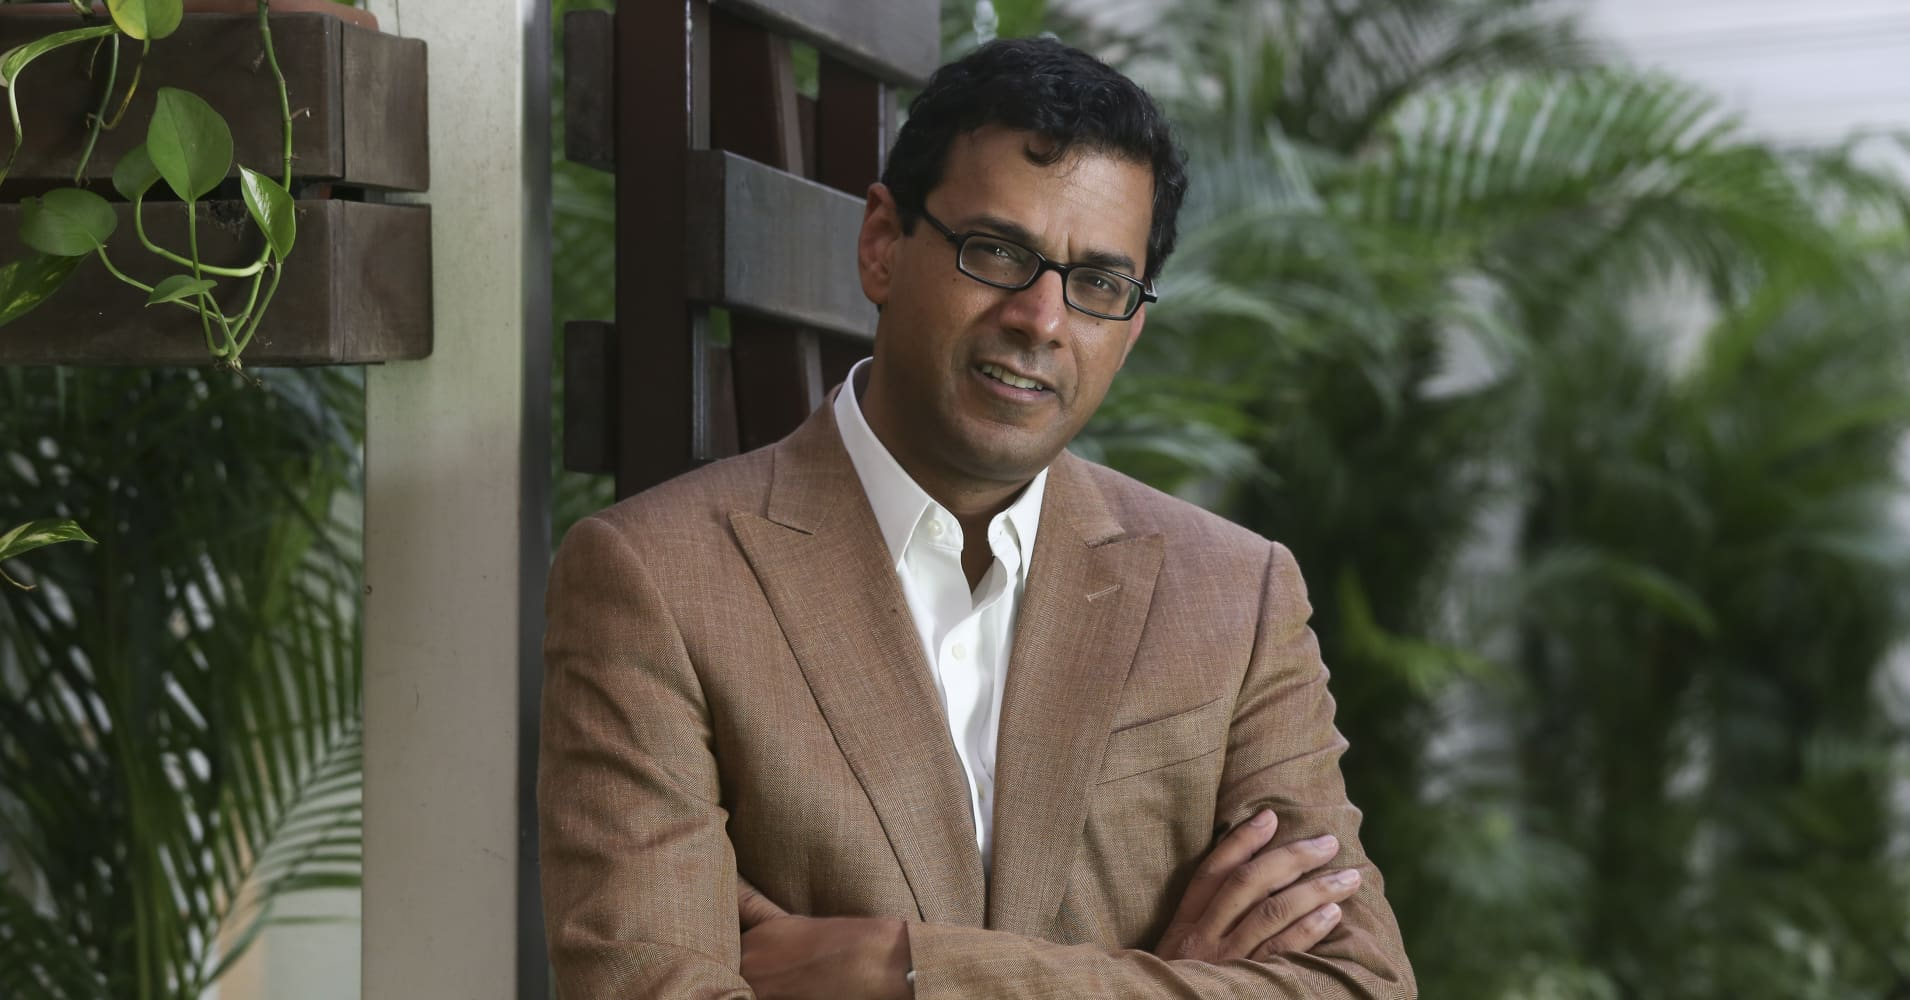 This image shows Atul Gawande, US writer, surgeon and researcher.